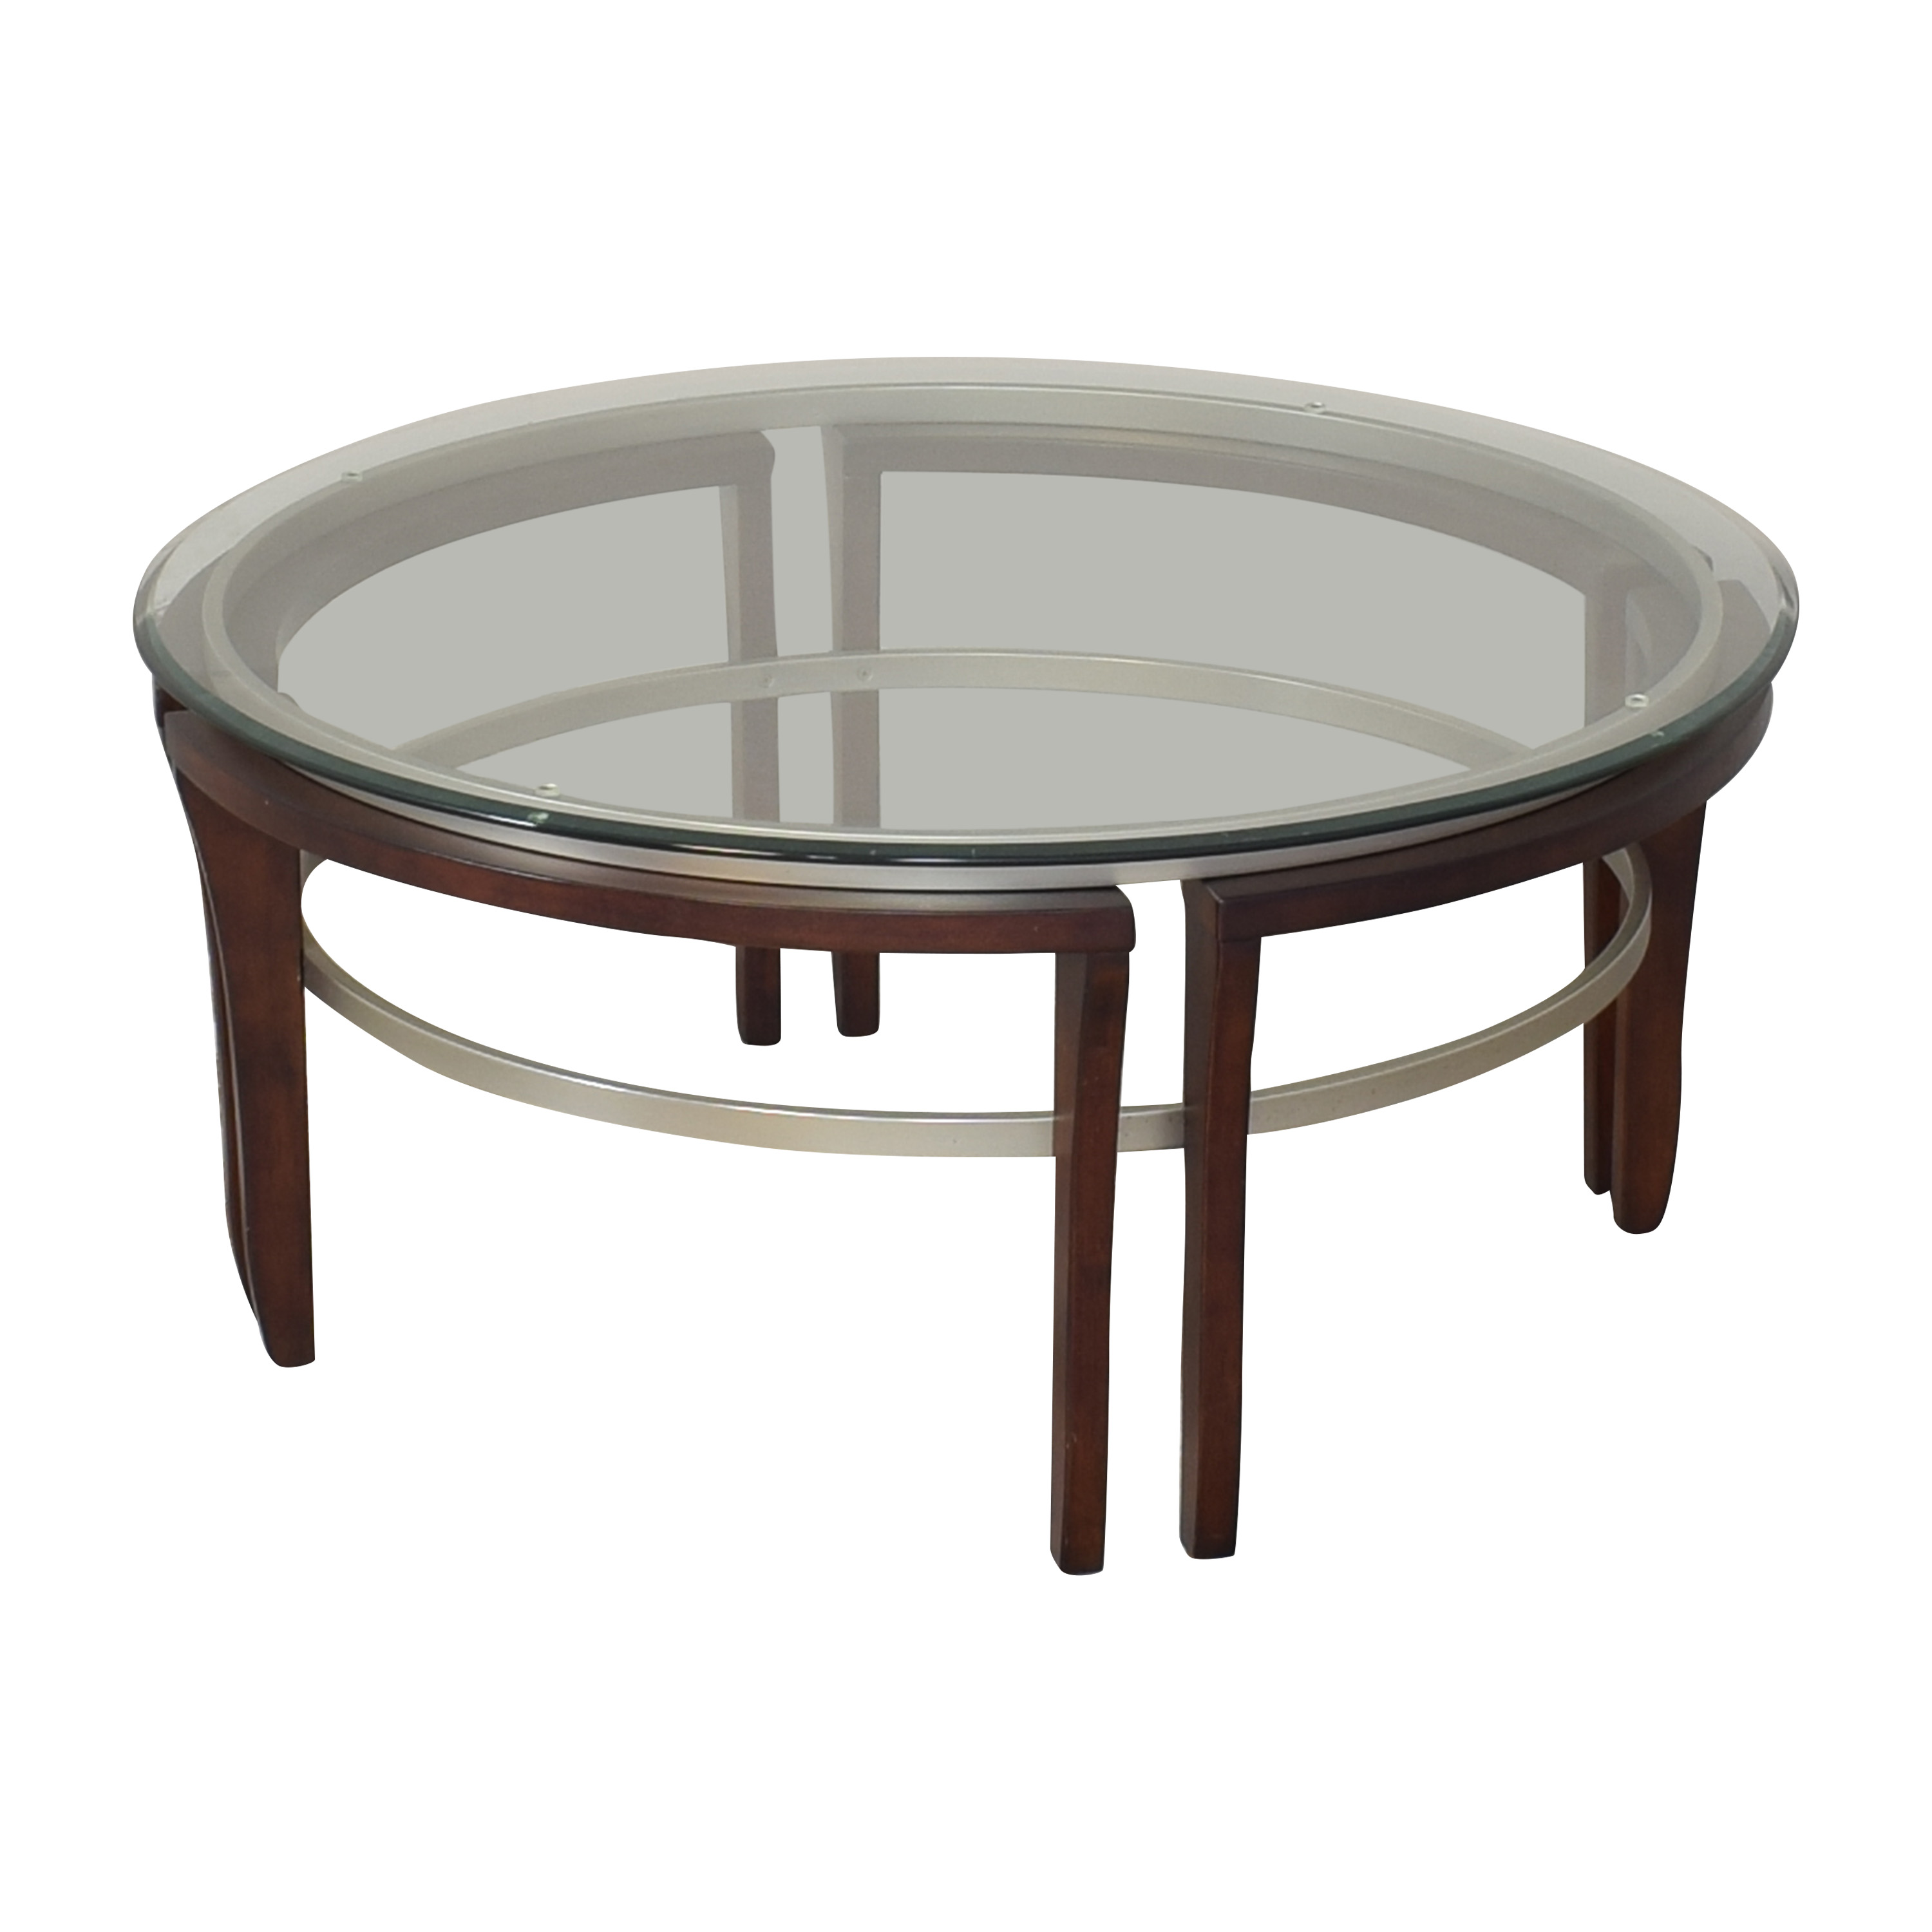 buy Macy's Fusion Round Coffee Table Macy's Coffee Tables